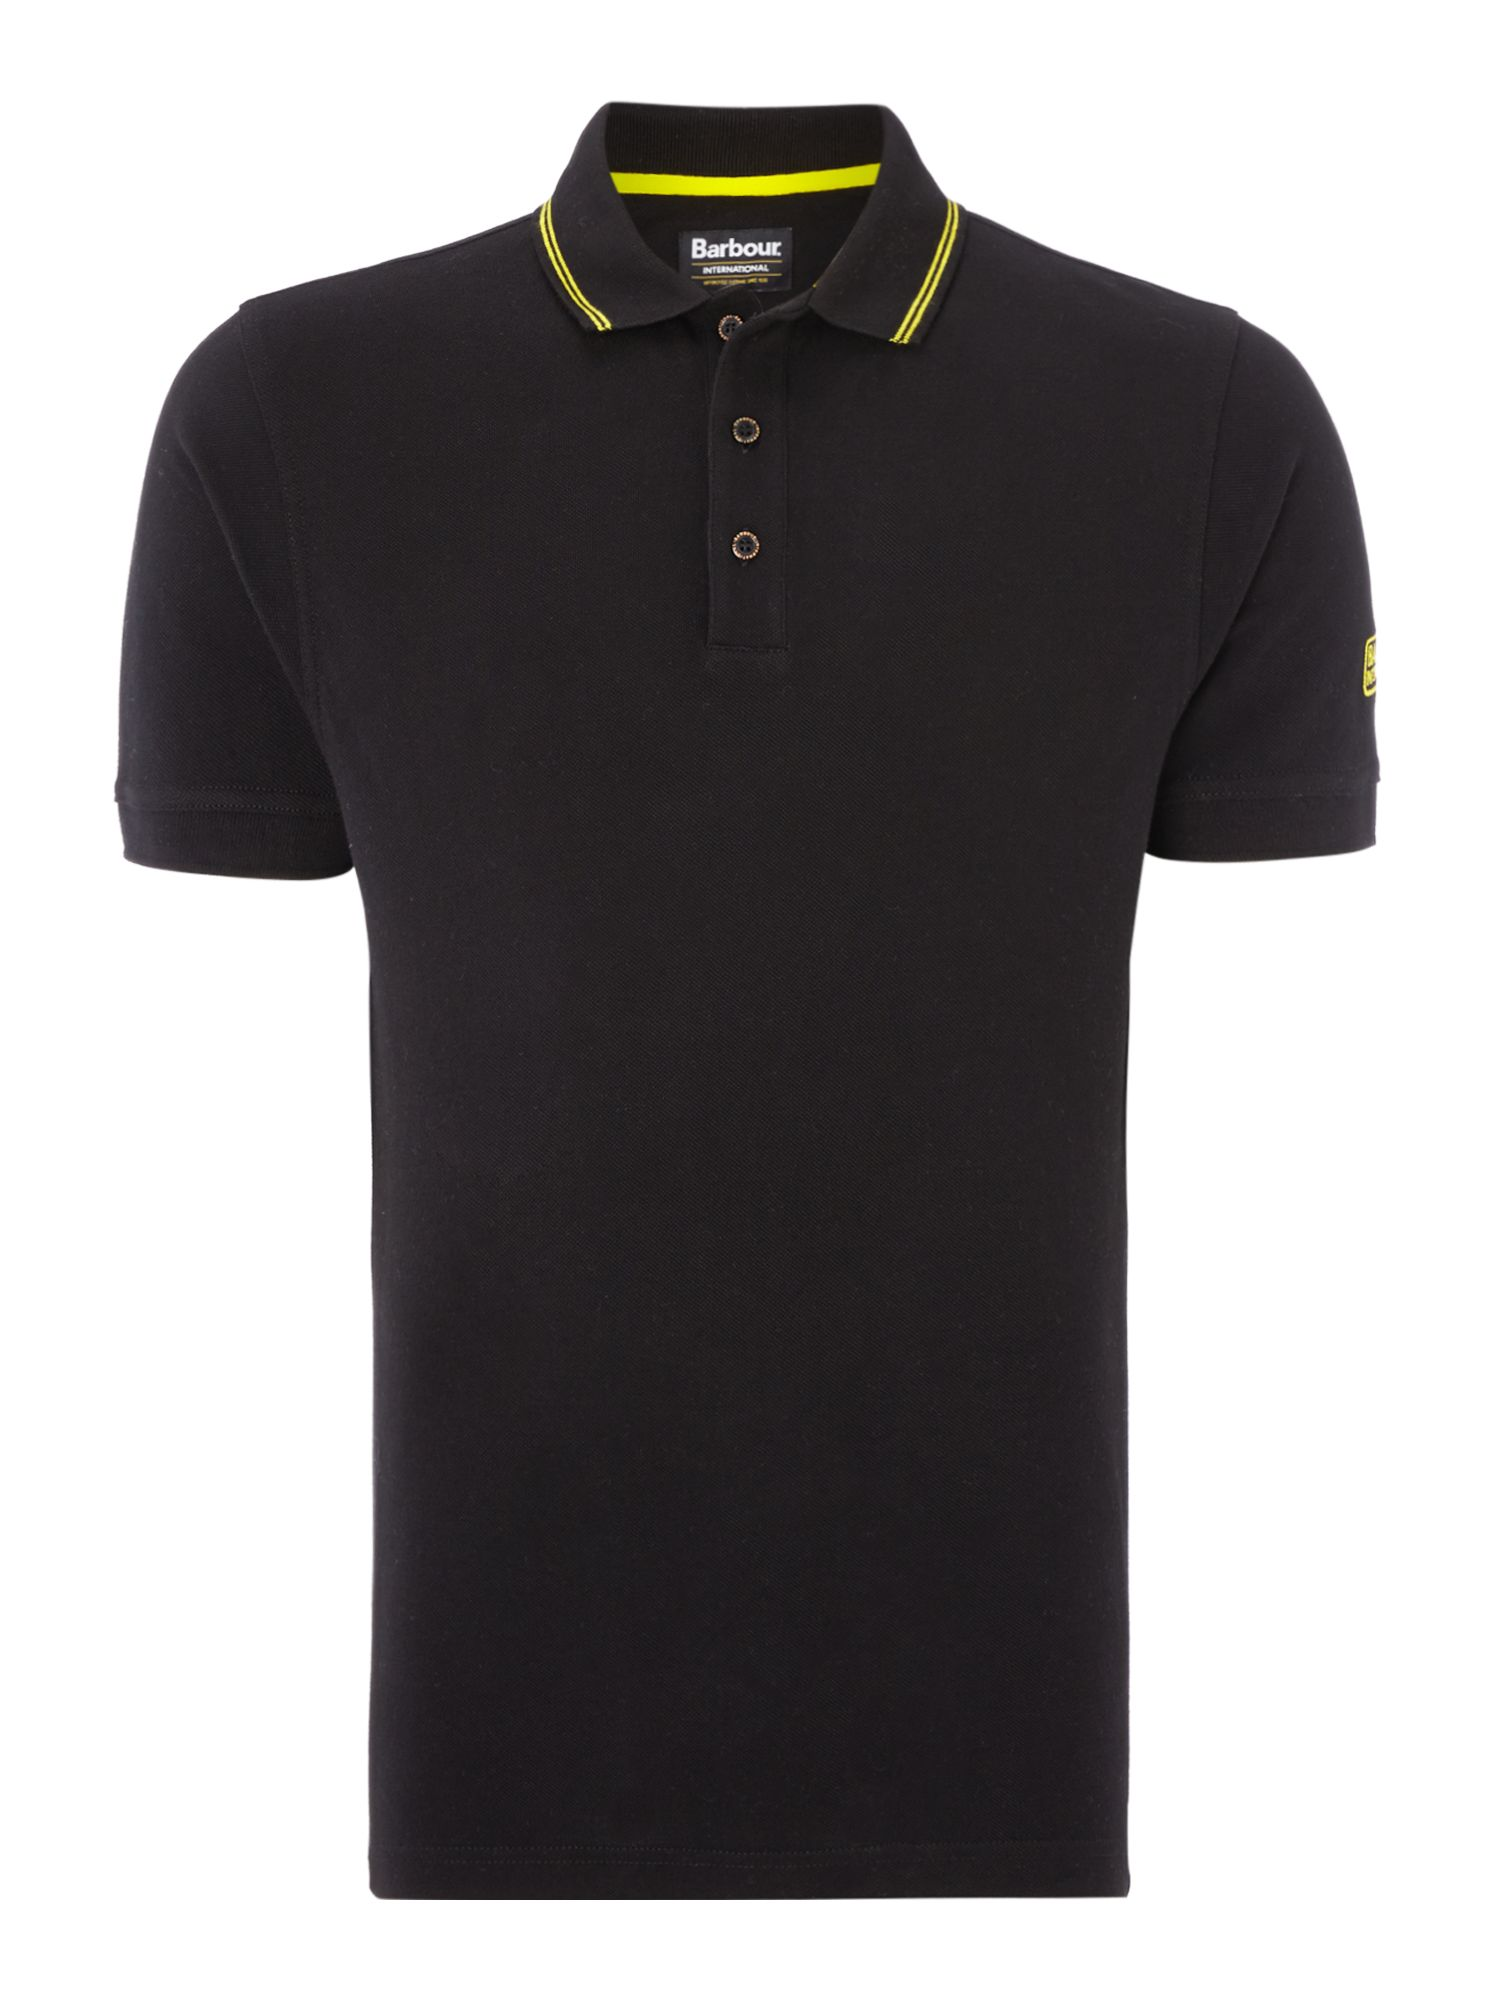 Men's Barbour International Polo Shirt, Black